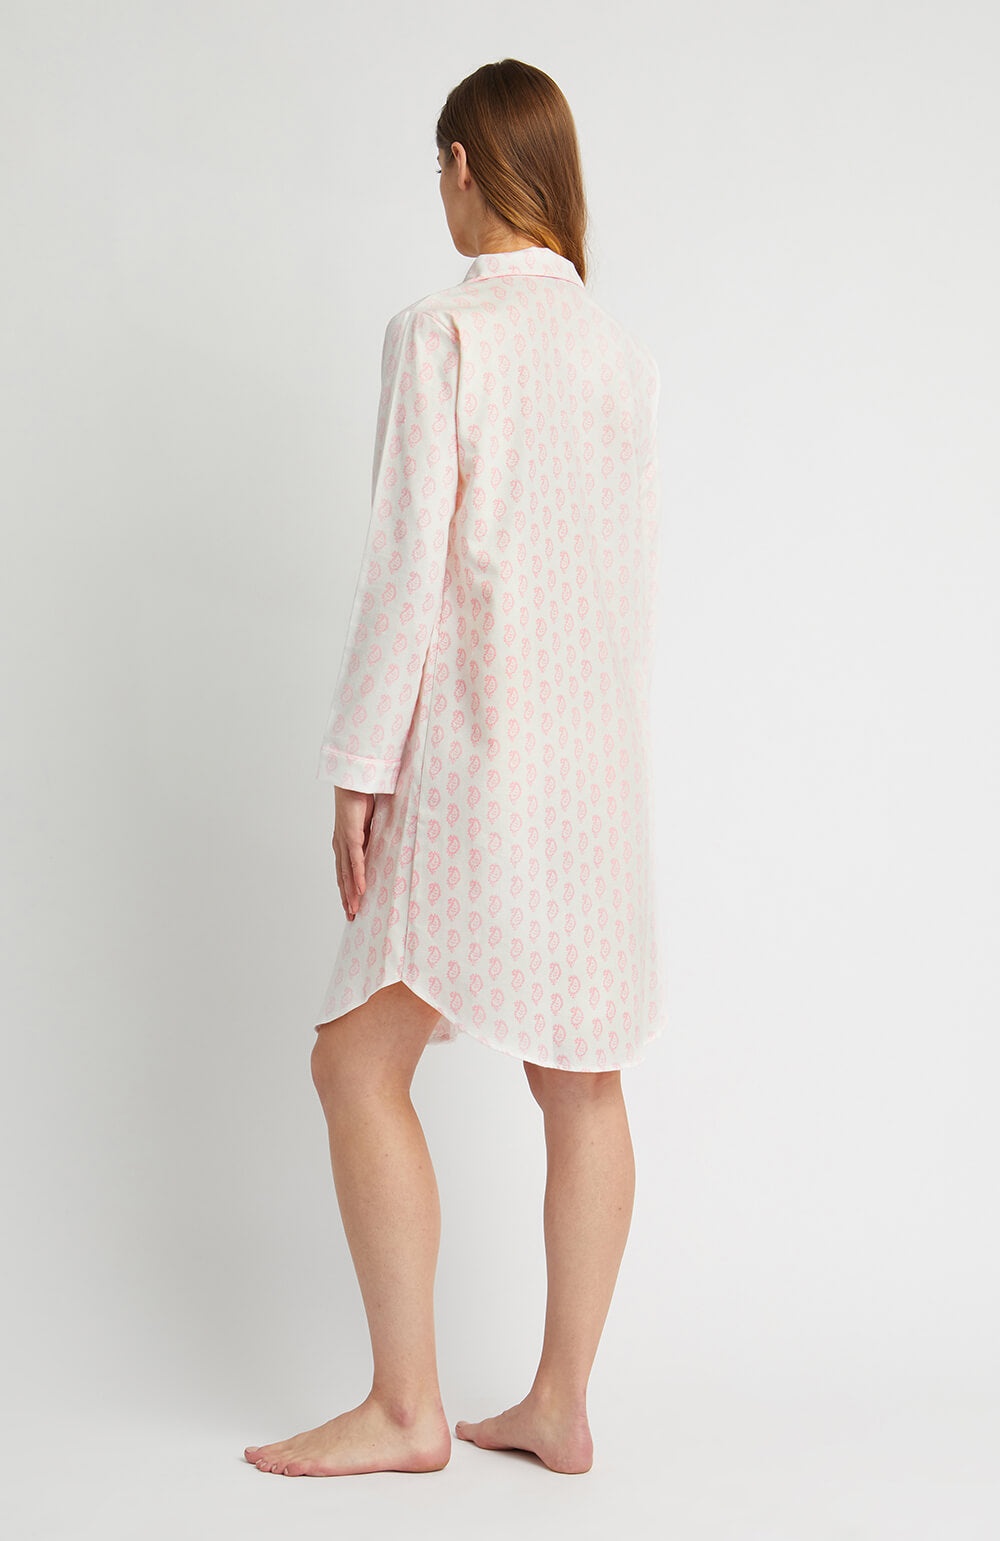 Brushed Pastel Nightshirt (blnf) - Pink Paisley | Bonsoir of London